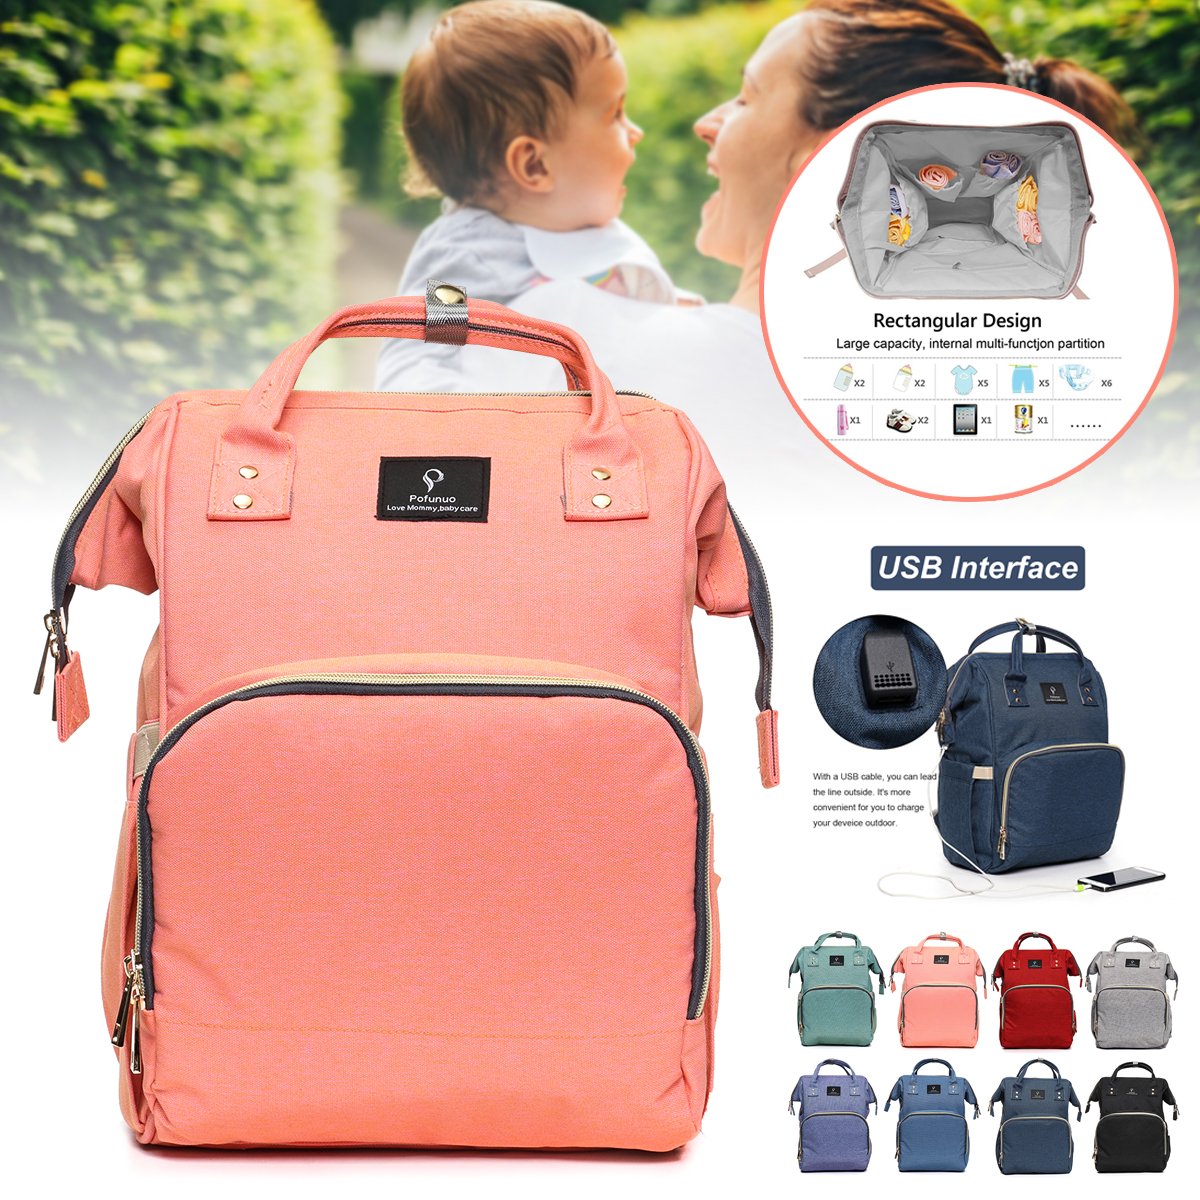 Backpack Diaper Bag with Smart USB Interface Charging Bagpack Large Baby Diaper Nappy Multifunctional Waterproof